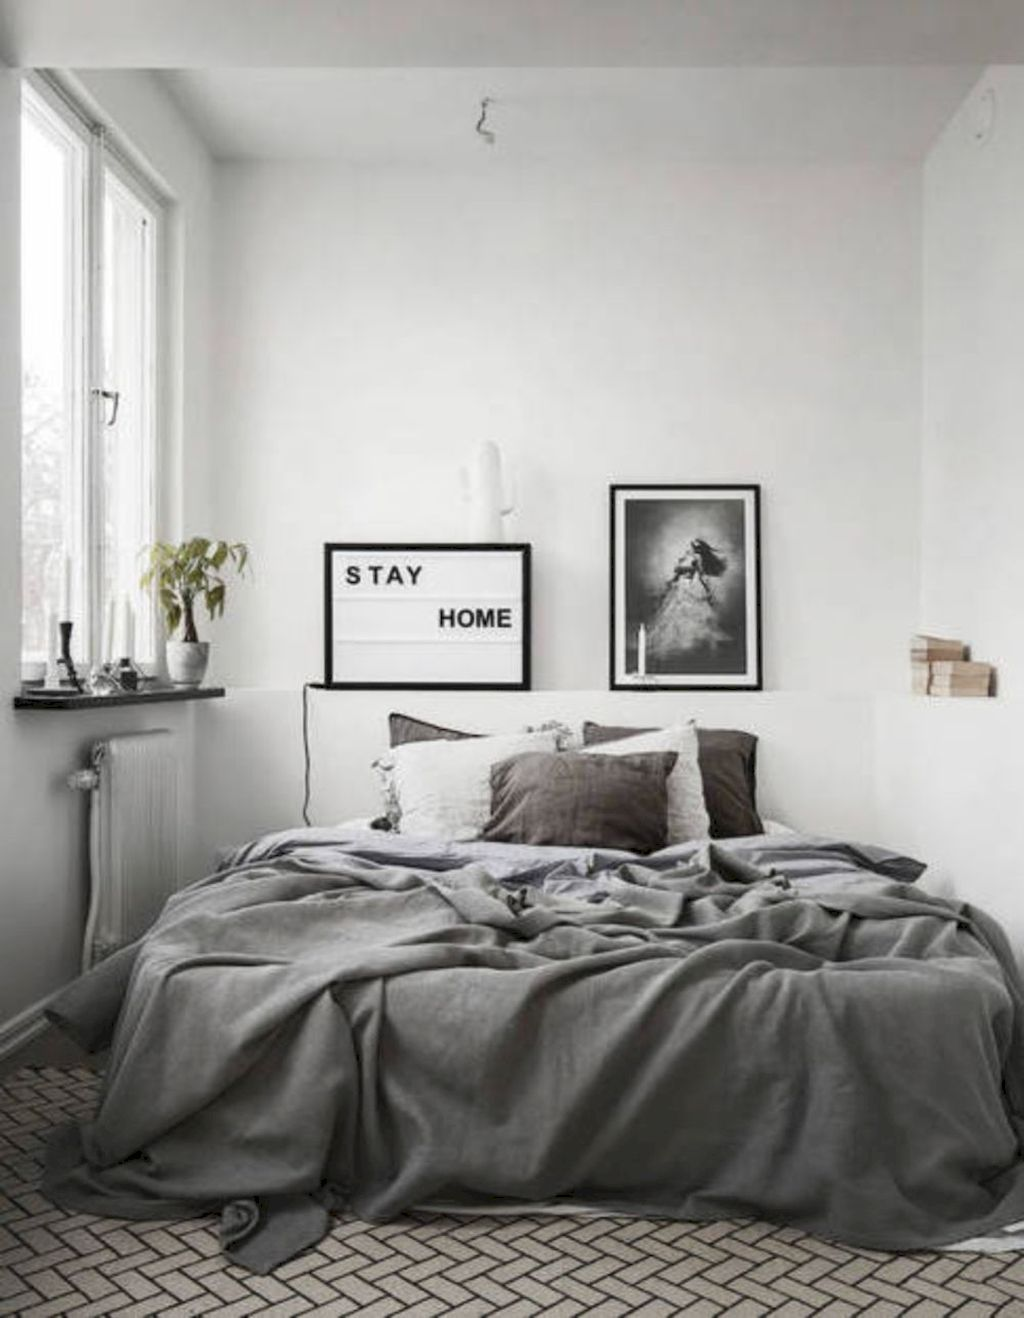 Decoration ideas for bedroom awesome  beautiful minimalist bedroom decoration ideas